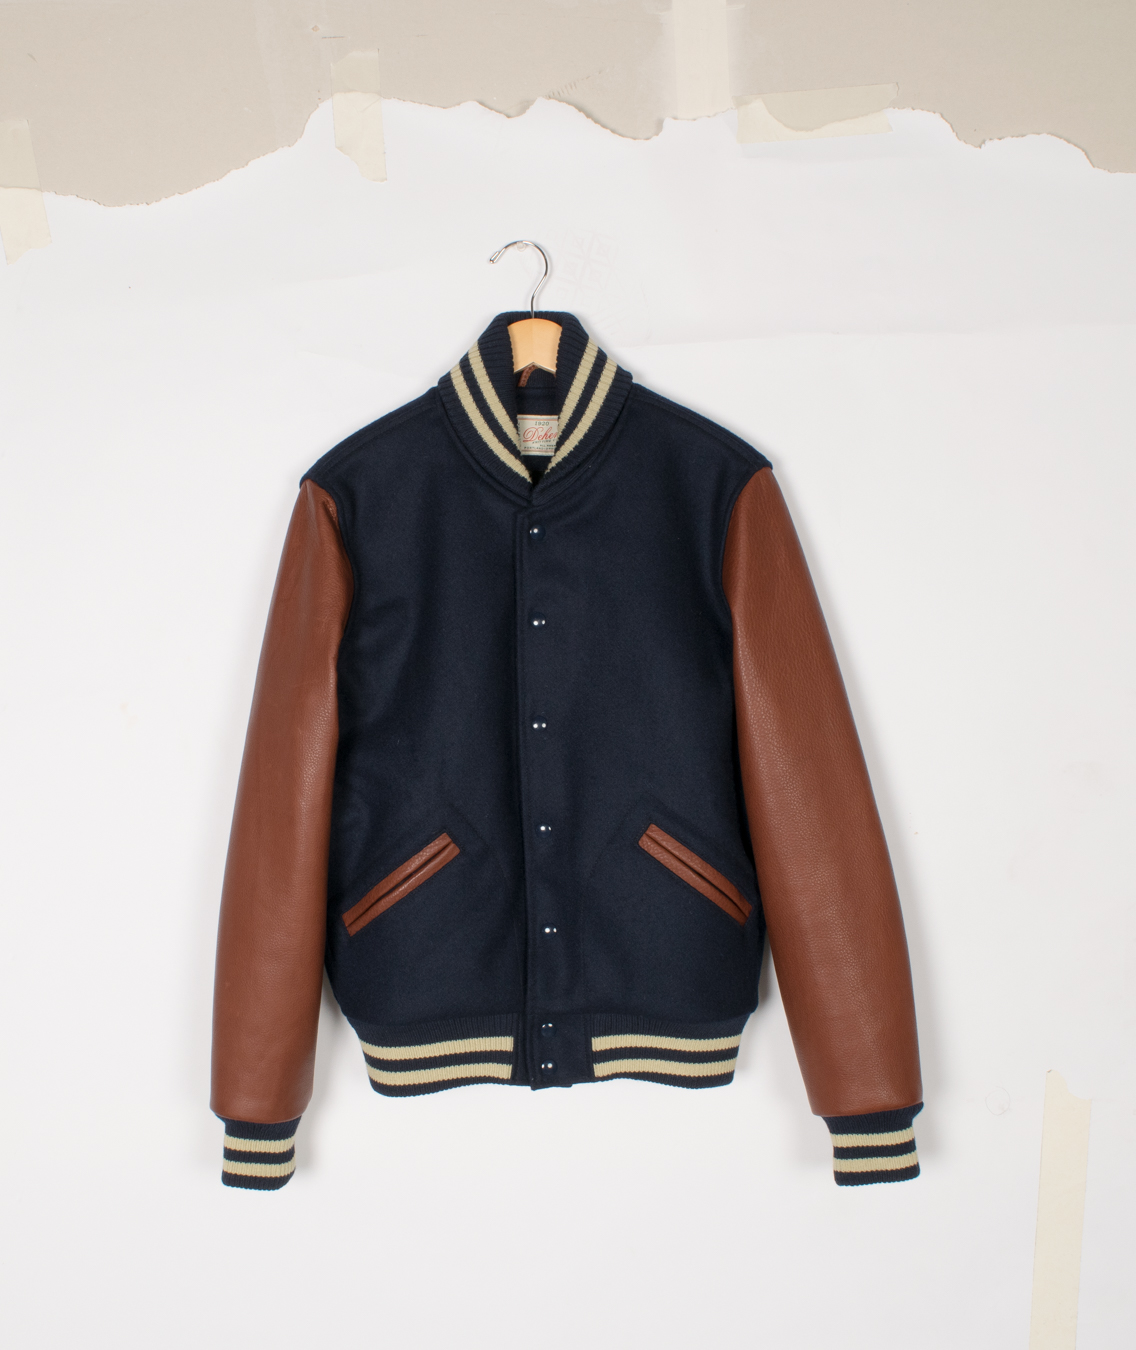 Varsity Jacket - Dark Navy/Brandy - $575